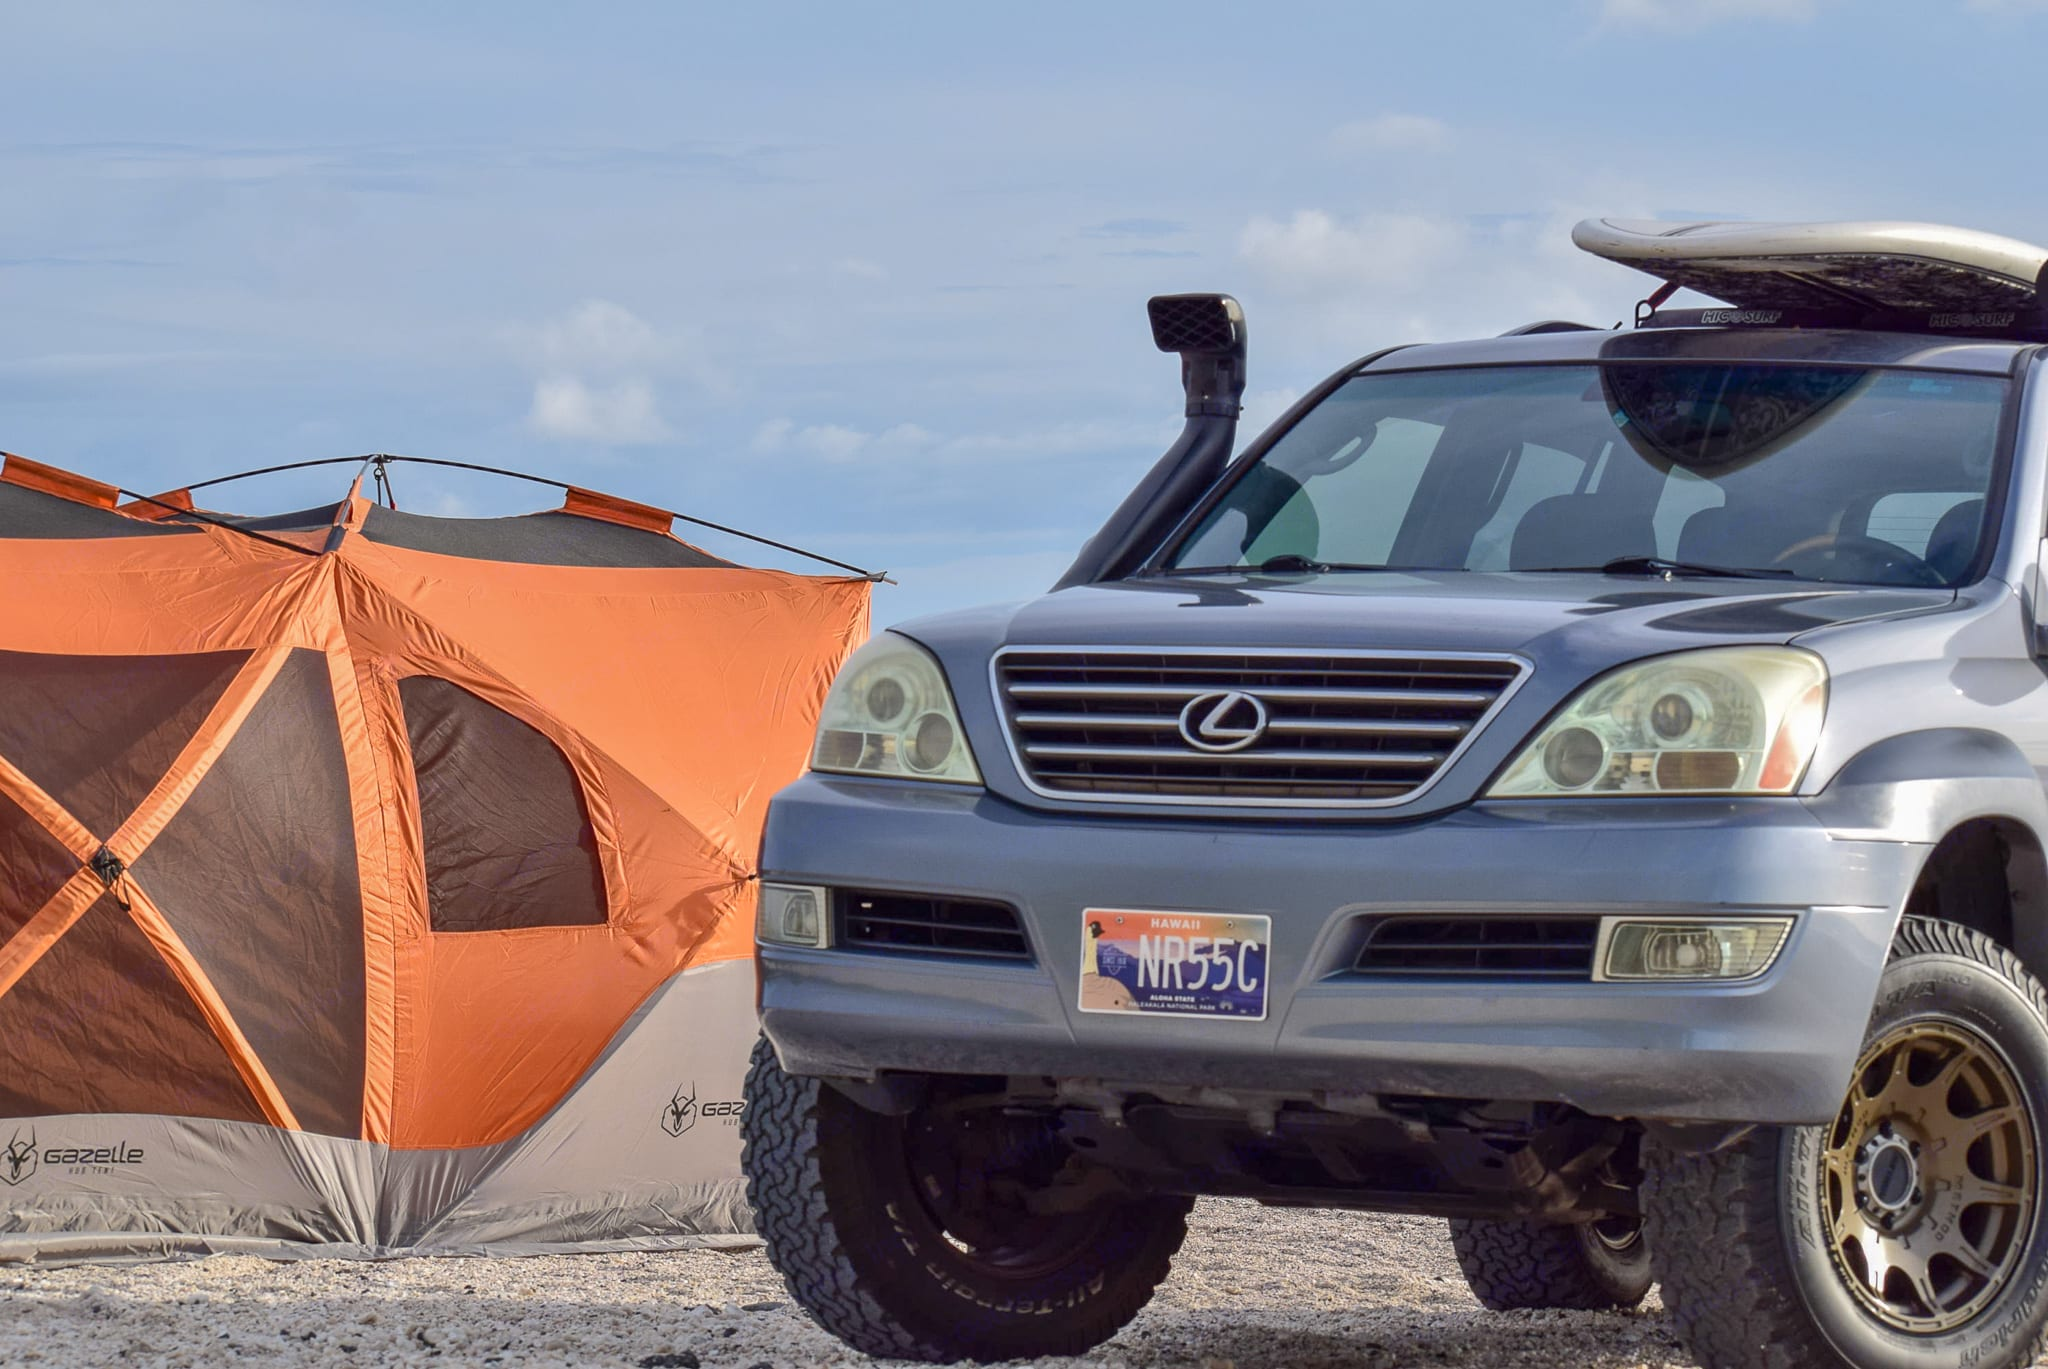 Good looking campsite on beach with your rig and Gazelle tent. Lexus GX 470 2005